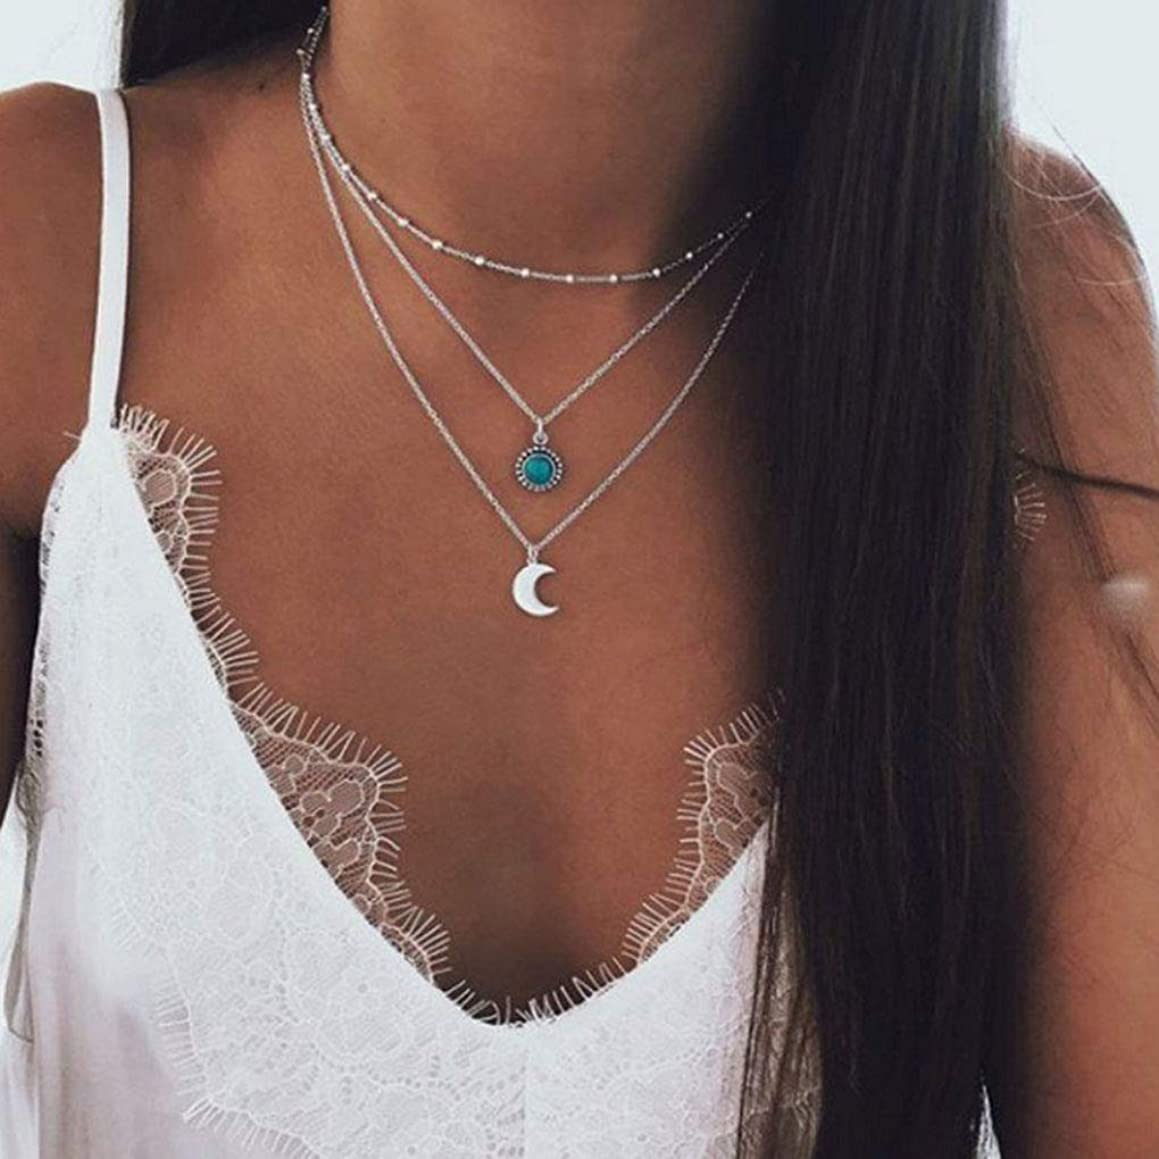 CanB Pendant Layered Necklaces Moon Turquoise Bohemia Chain Jewelry Necklace for Women and Girls (Silver)